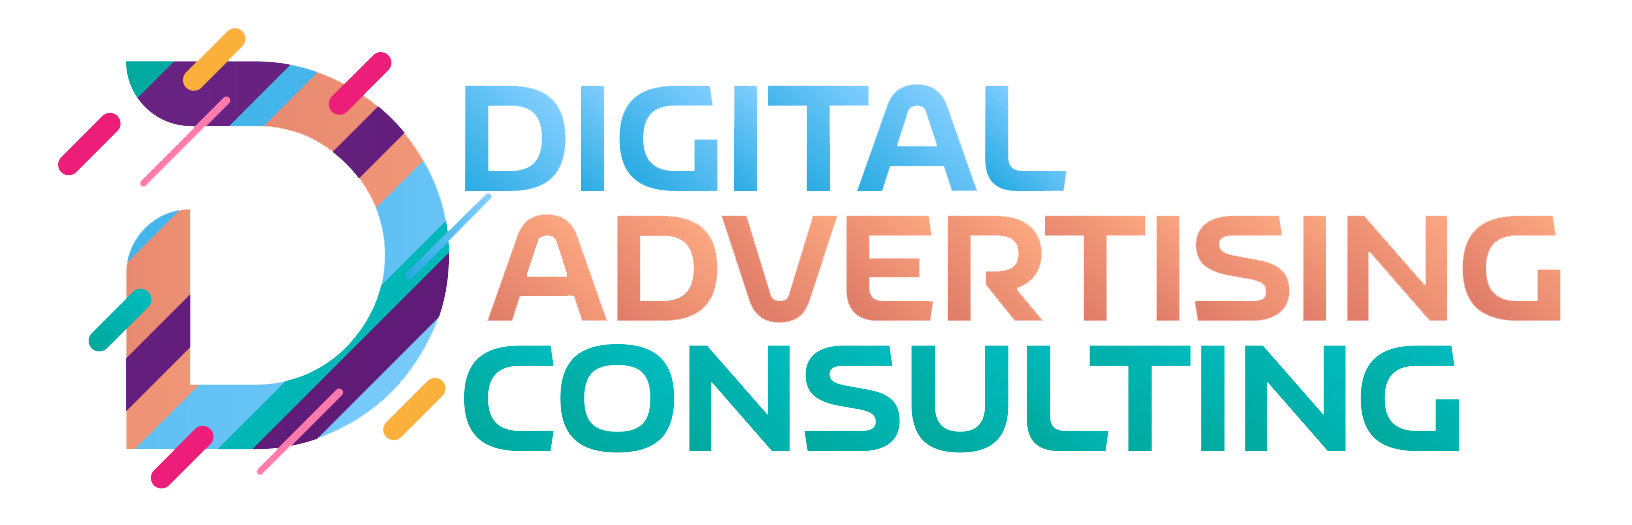 DigitalAdvertising01